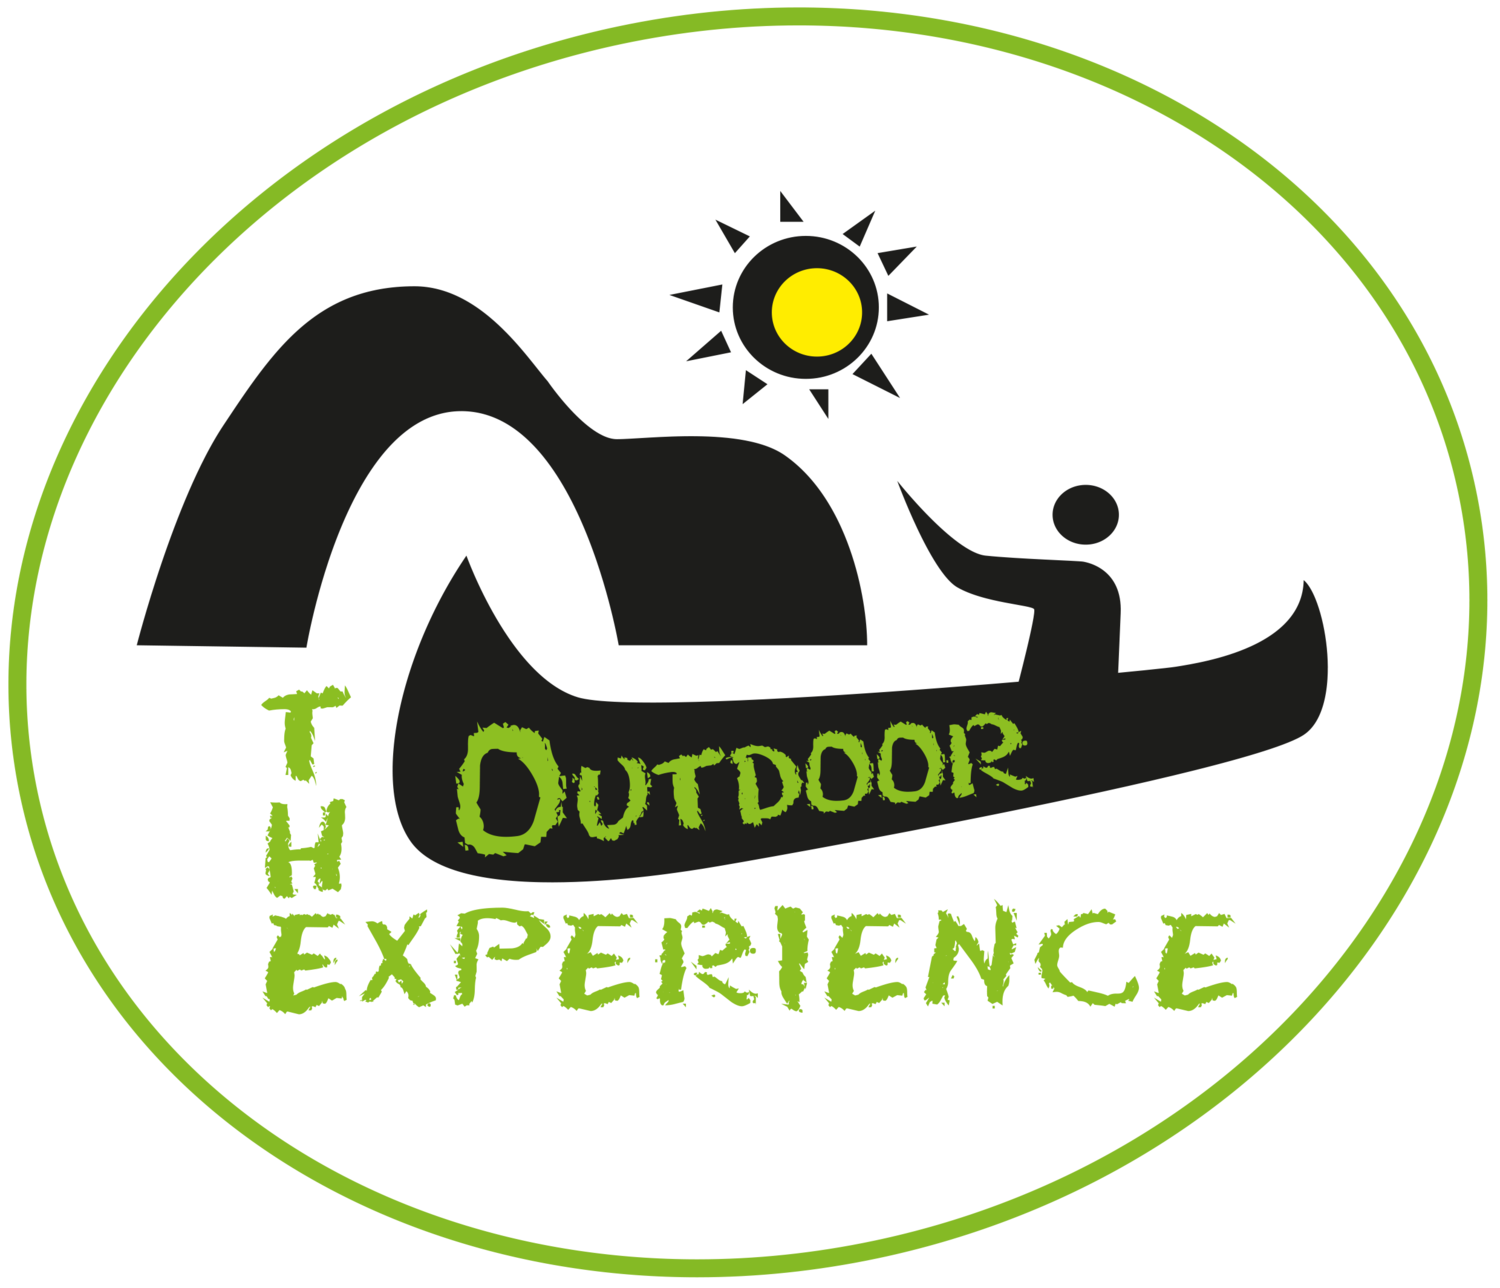 Outdoor clipart tour guide Ardeche Activity The OUTDOOR Guides